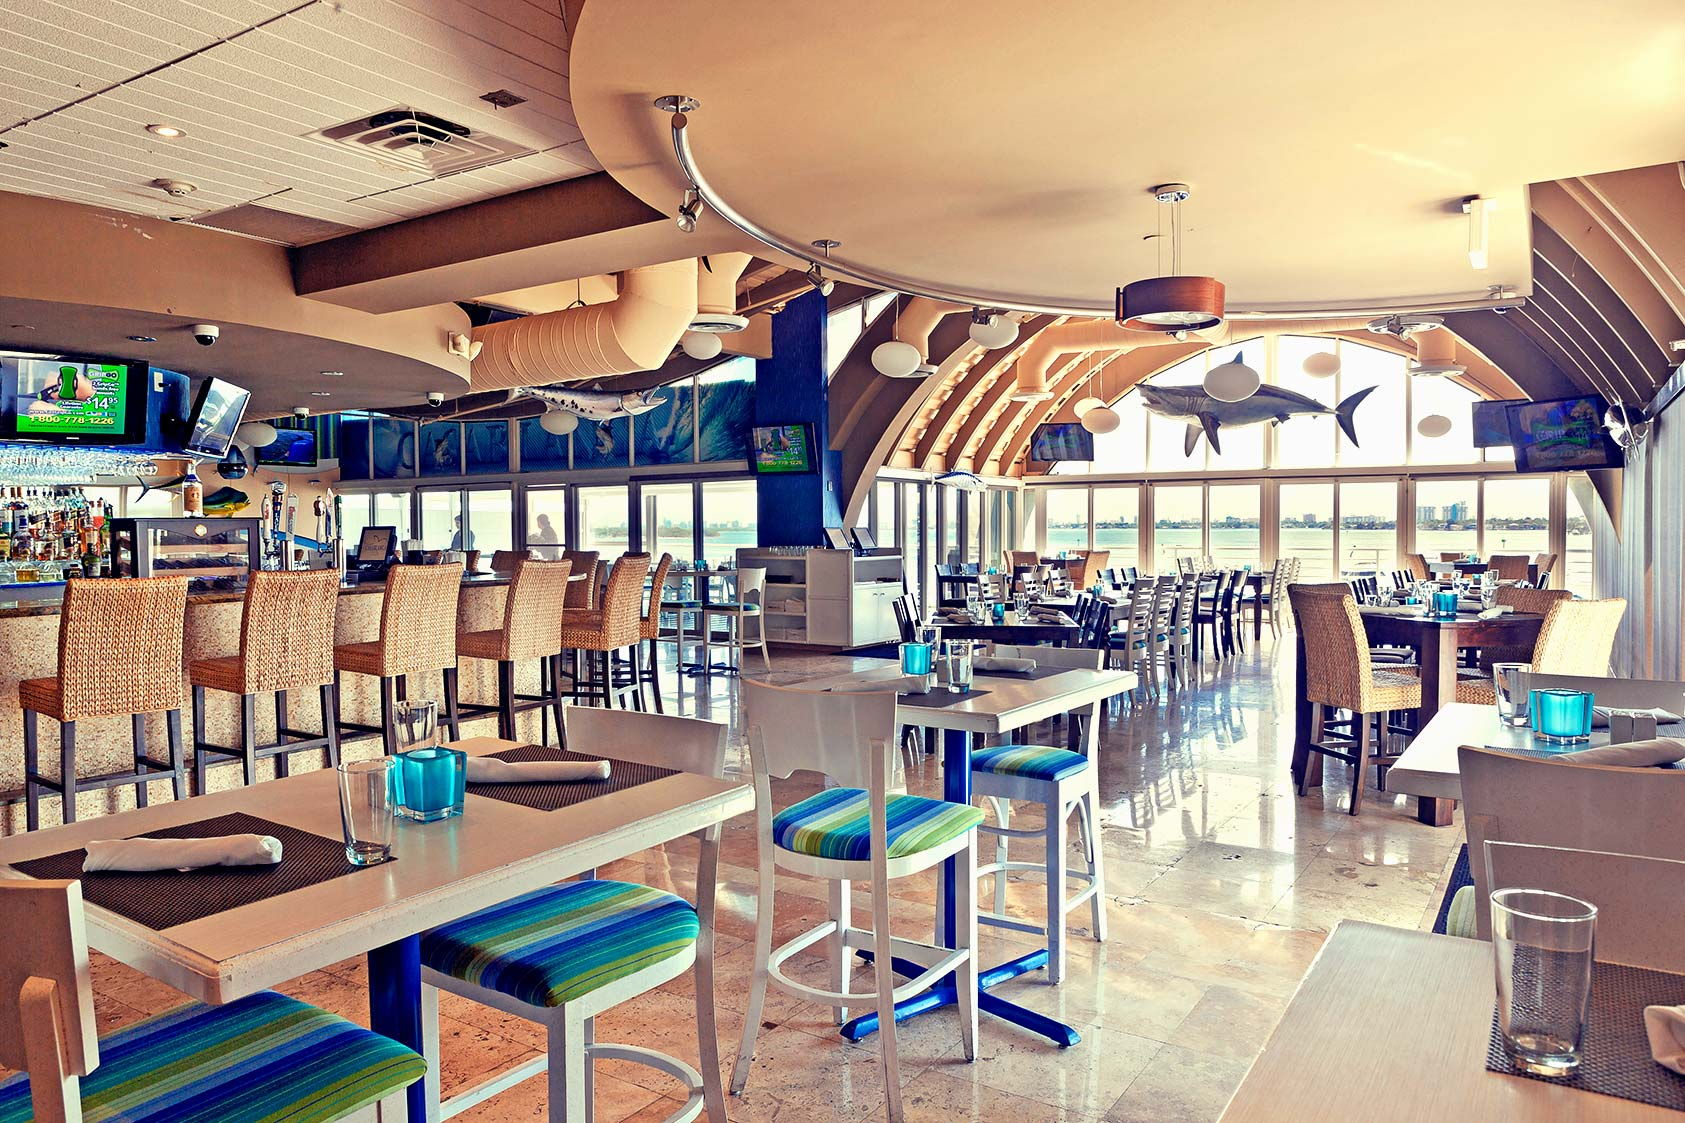 Gallery south beach miami restaurants midtown miami for Garcia s seafood grille fish market miami fl